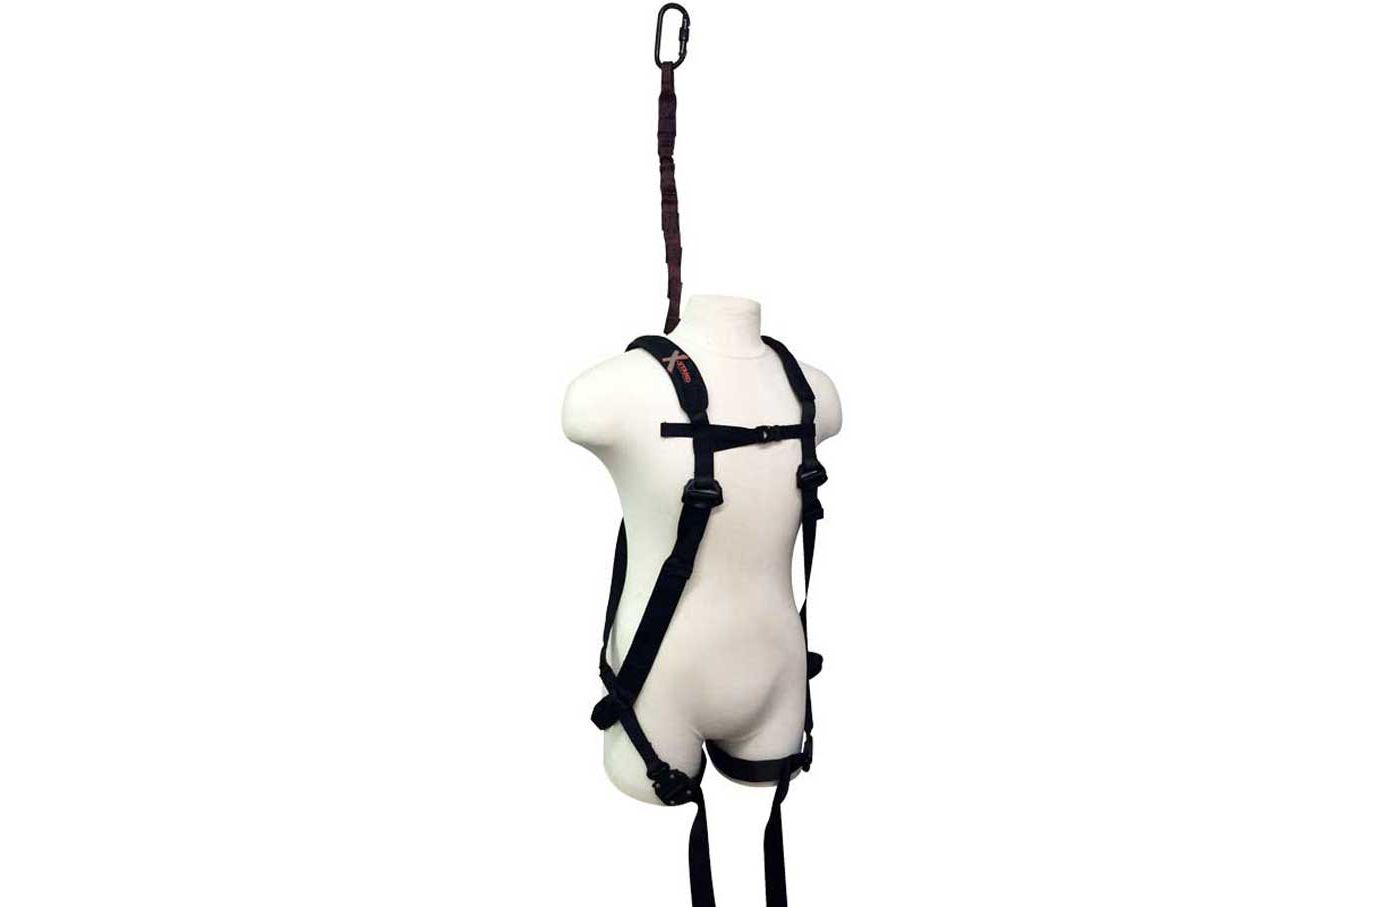 X-Stand Freedom Ultra-Light Weight Safety Harness